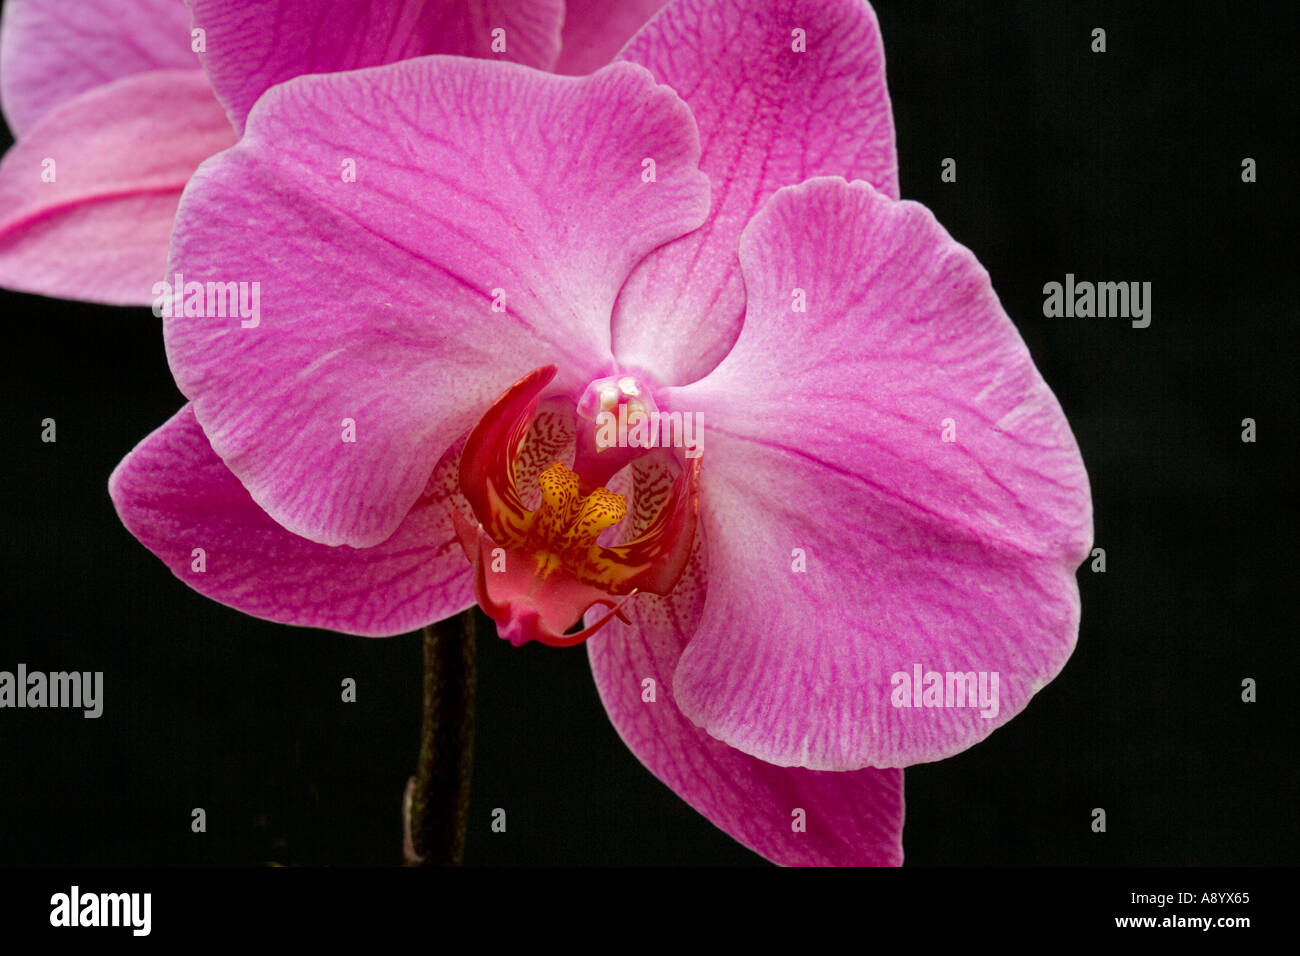 Close up of orchid showing anatomy of flower with mauve petals and ...